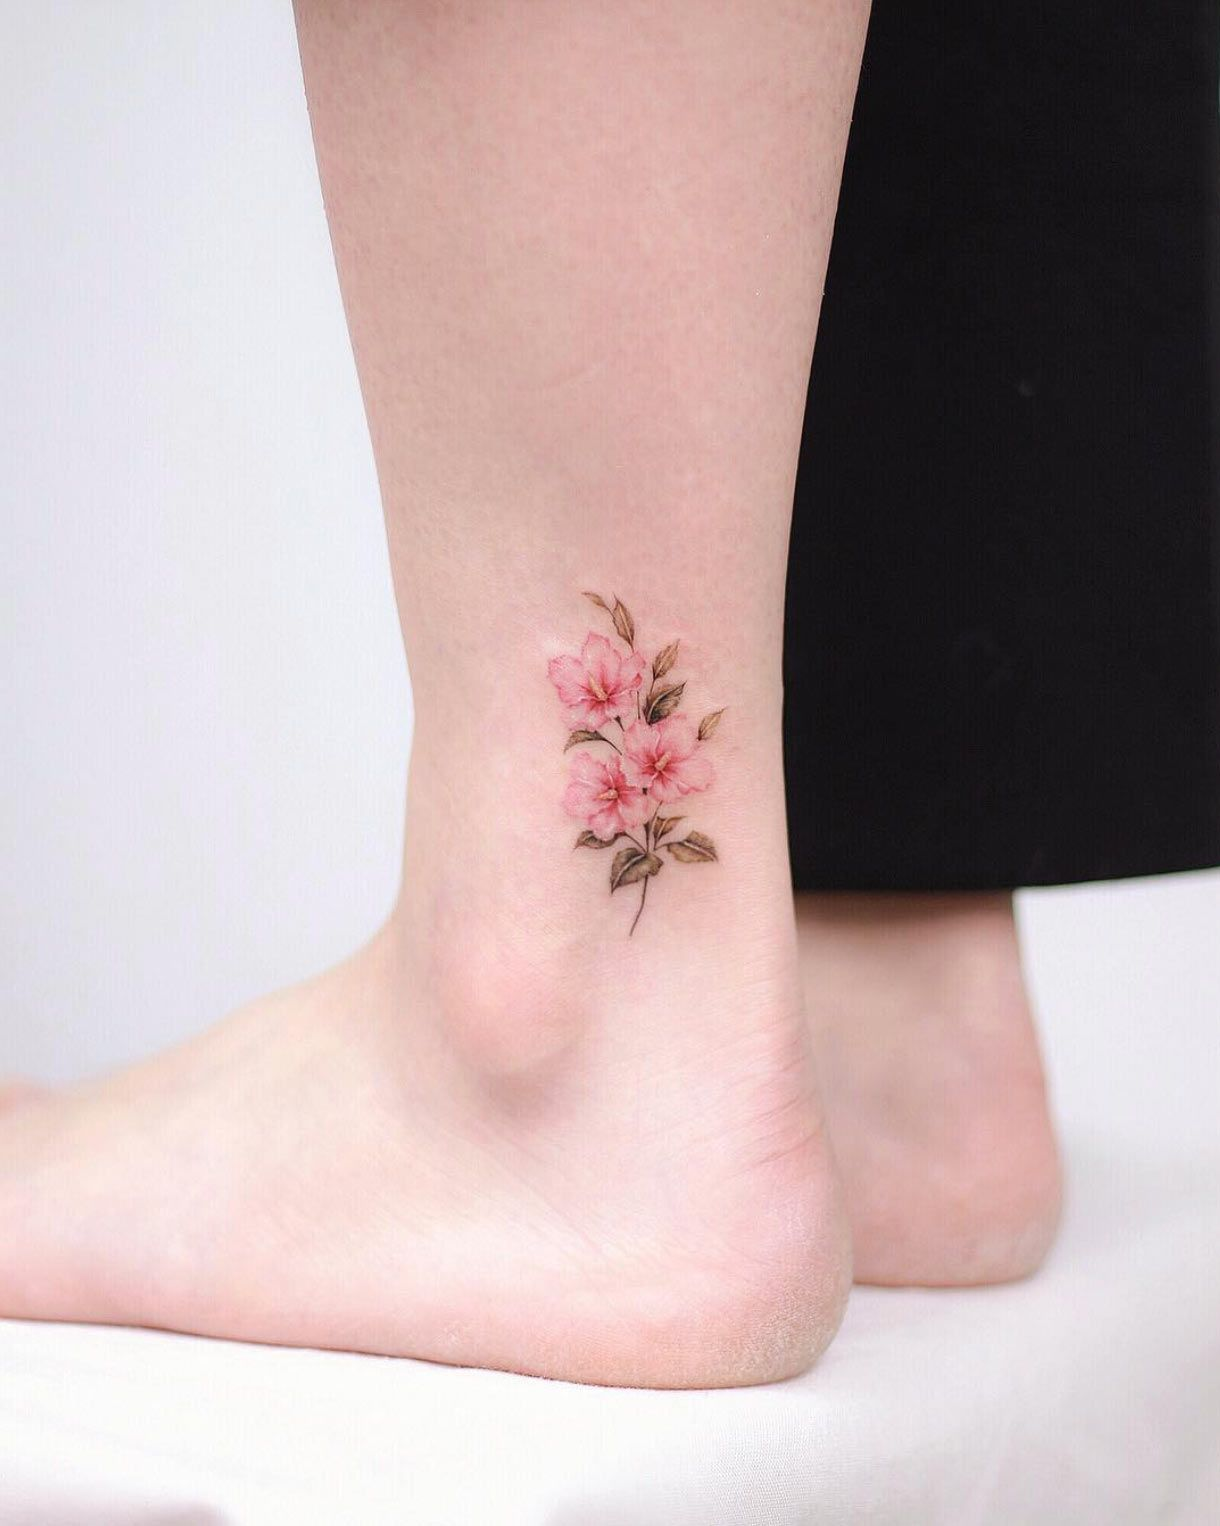 50 Gorgeous Tattoo Designs You Ll Desperately Desire Tattooblend Gorgeous Tattoos Cute Ankle Tattoos Small Tattoos